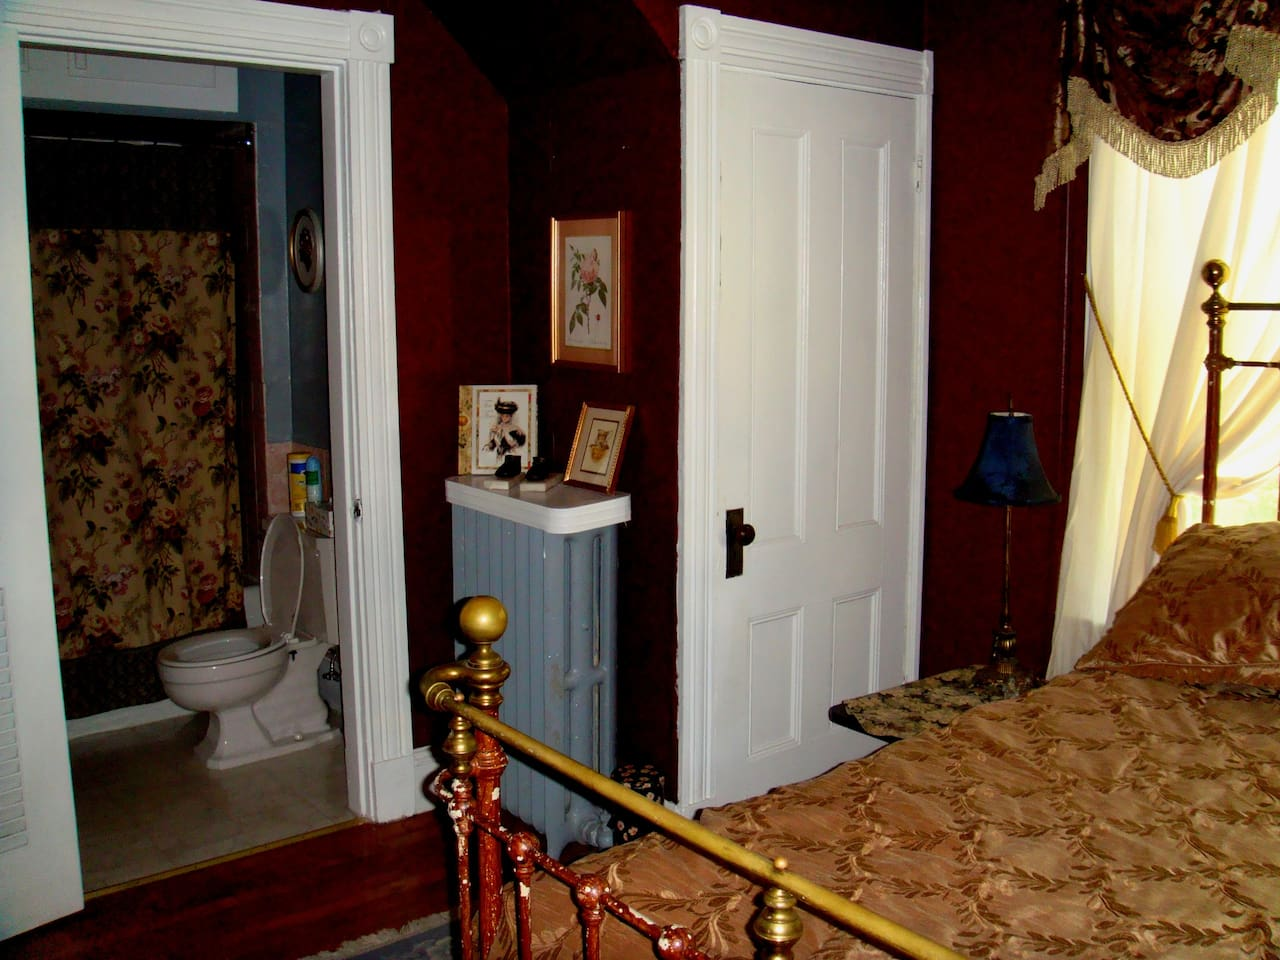 Master bedroom with antique wrought iron bed and bath ensuite.